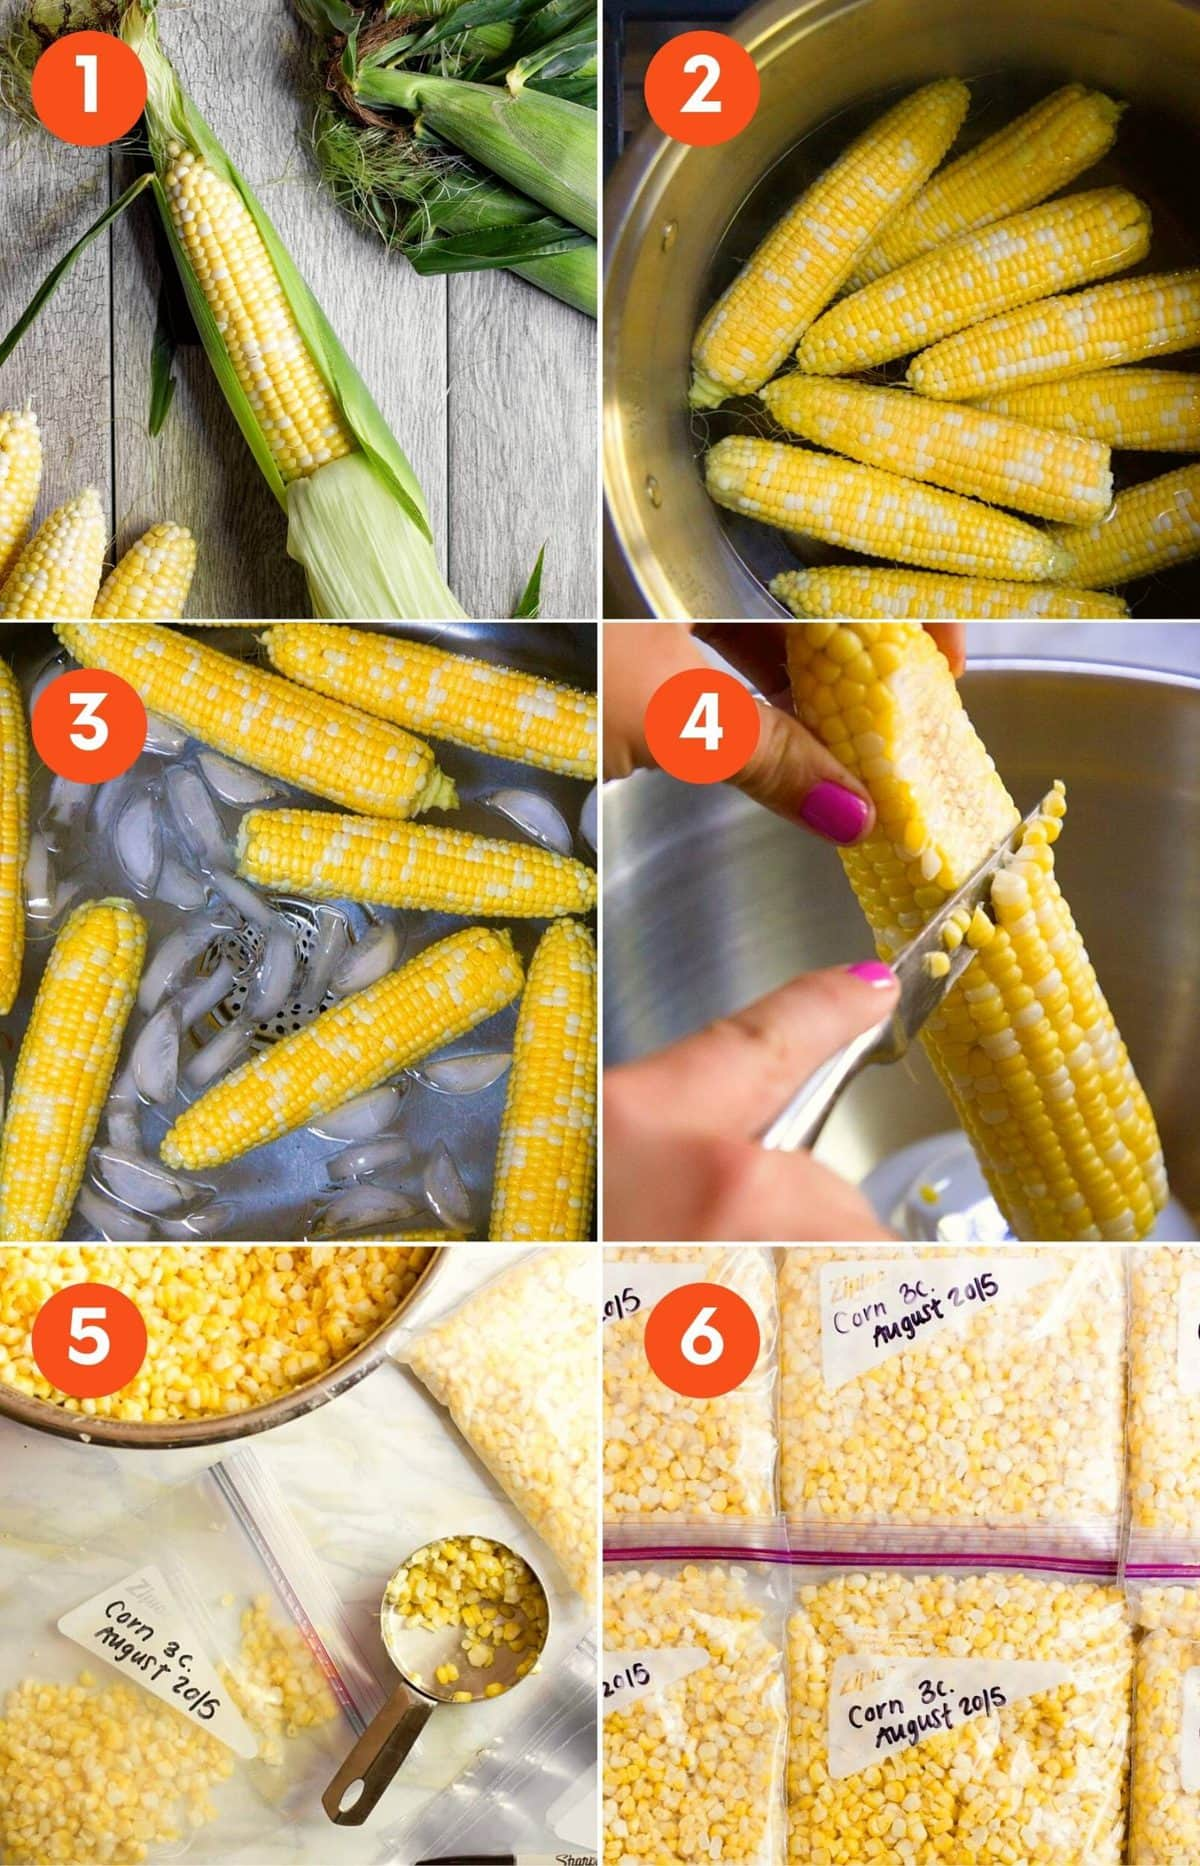 Collage of photos showing six steps to freeze corn: shuck it, blanch it, put it in an ice bath, cut kernels from the cob, measure kernels into freezer bags, freeze!